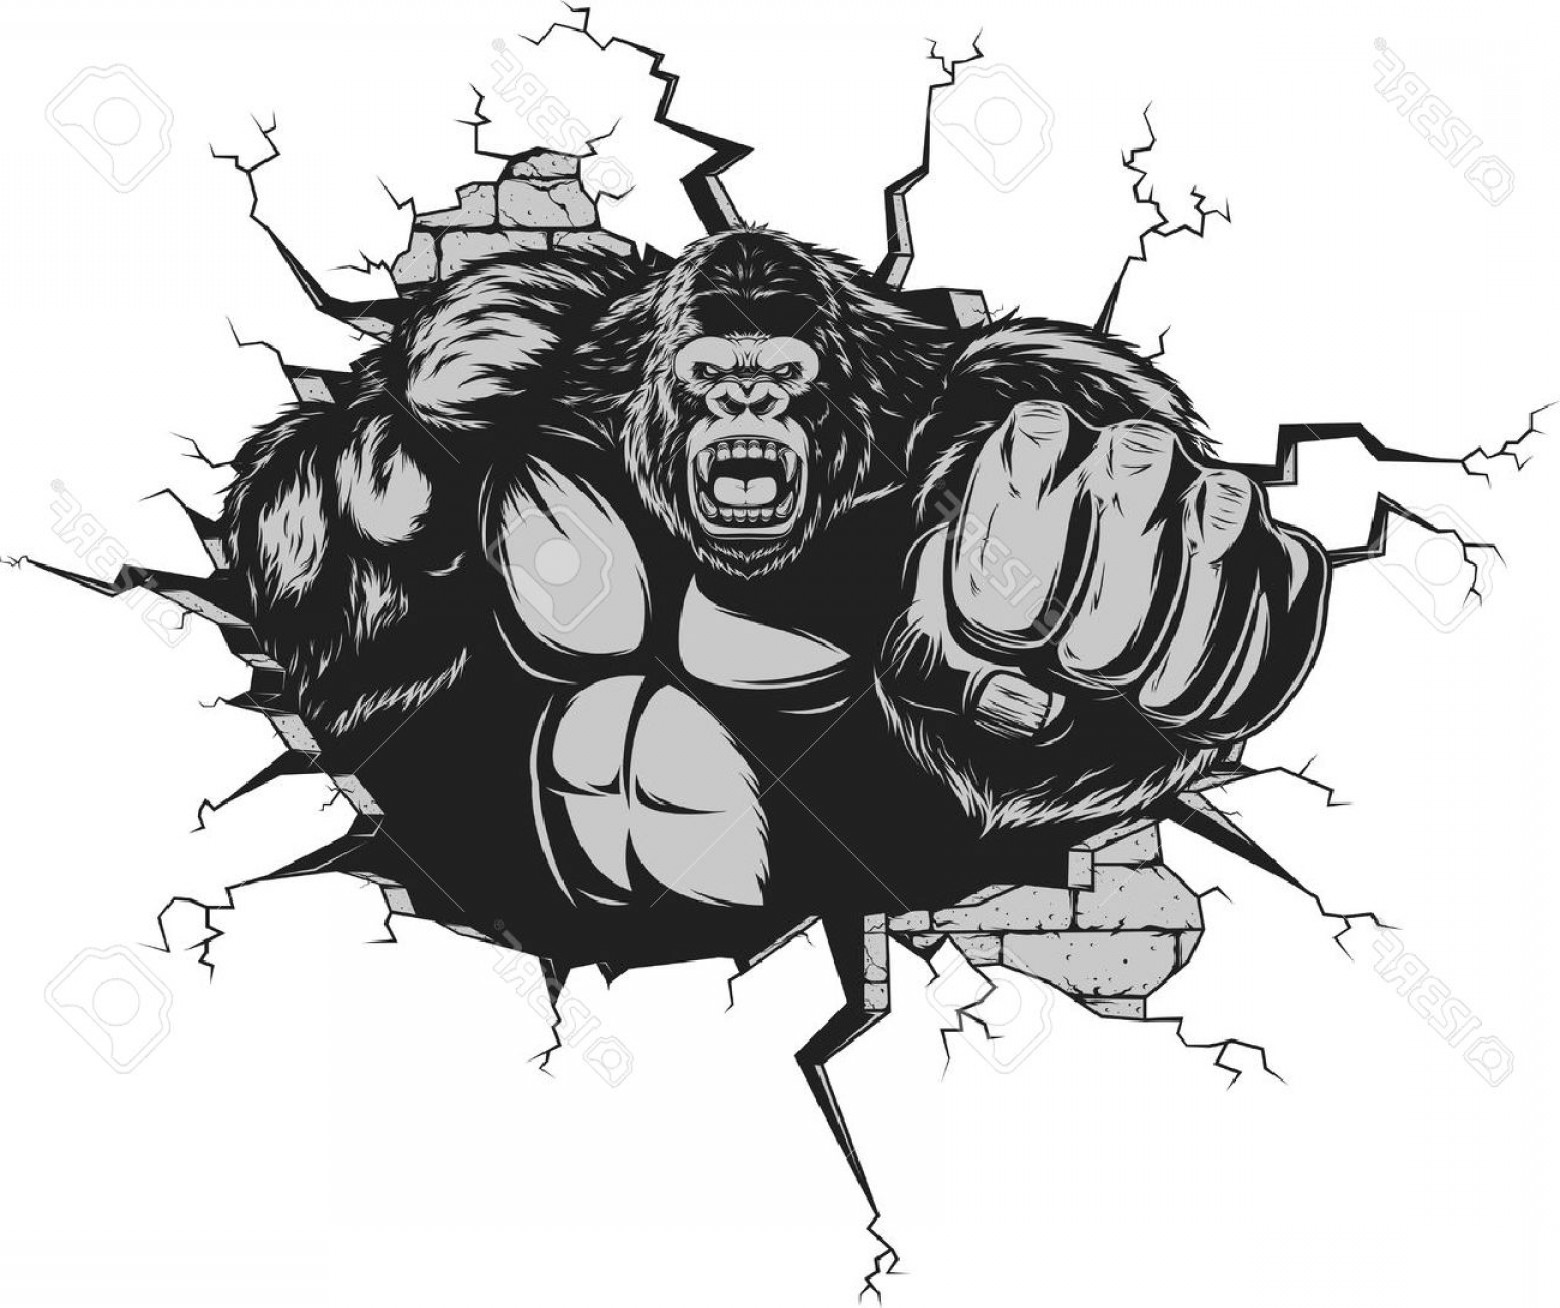 Drawings Of King Kong Vector: Photostock Vector Vector Illustration Ferocious Gorilla Hit The Wall With His Fist